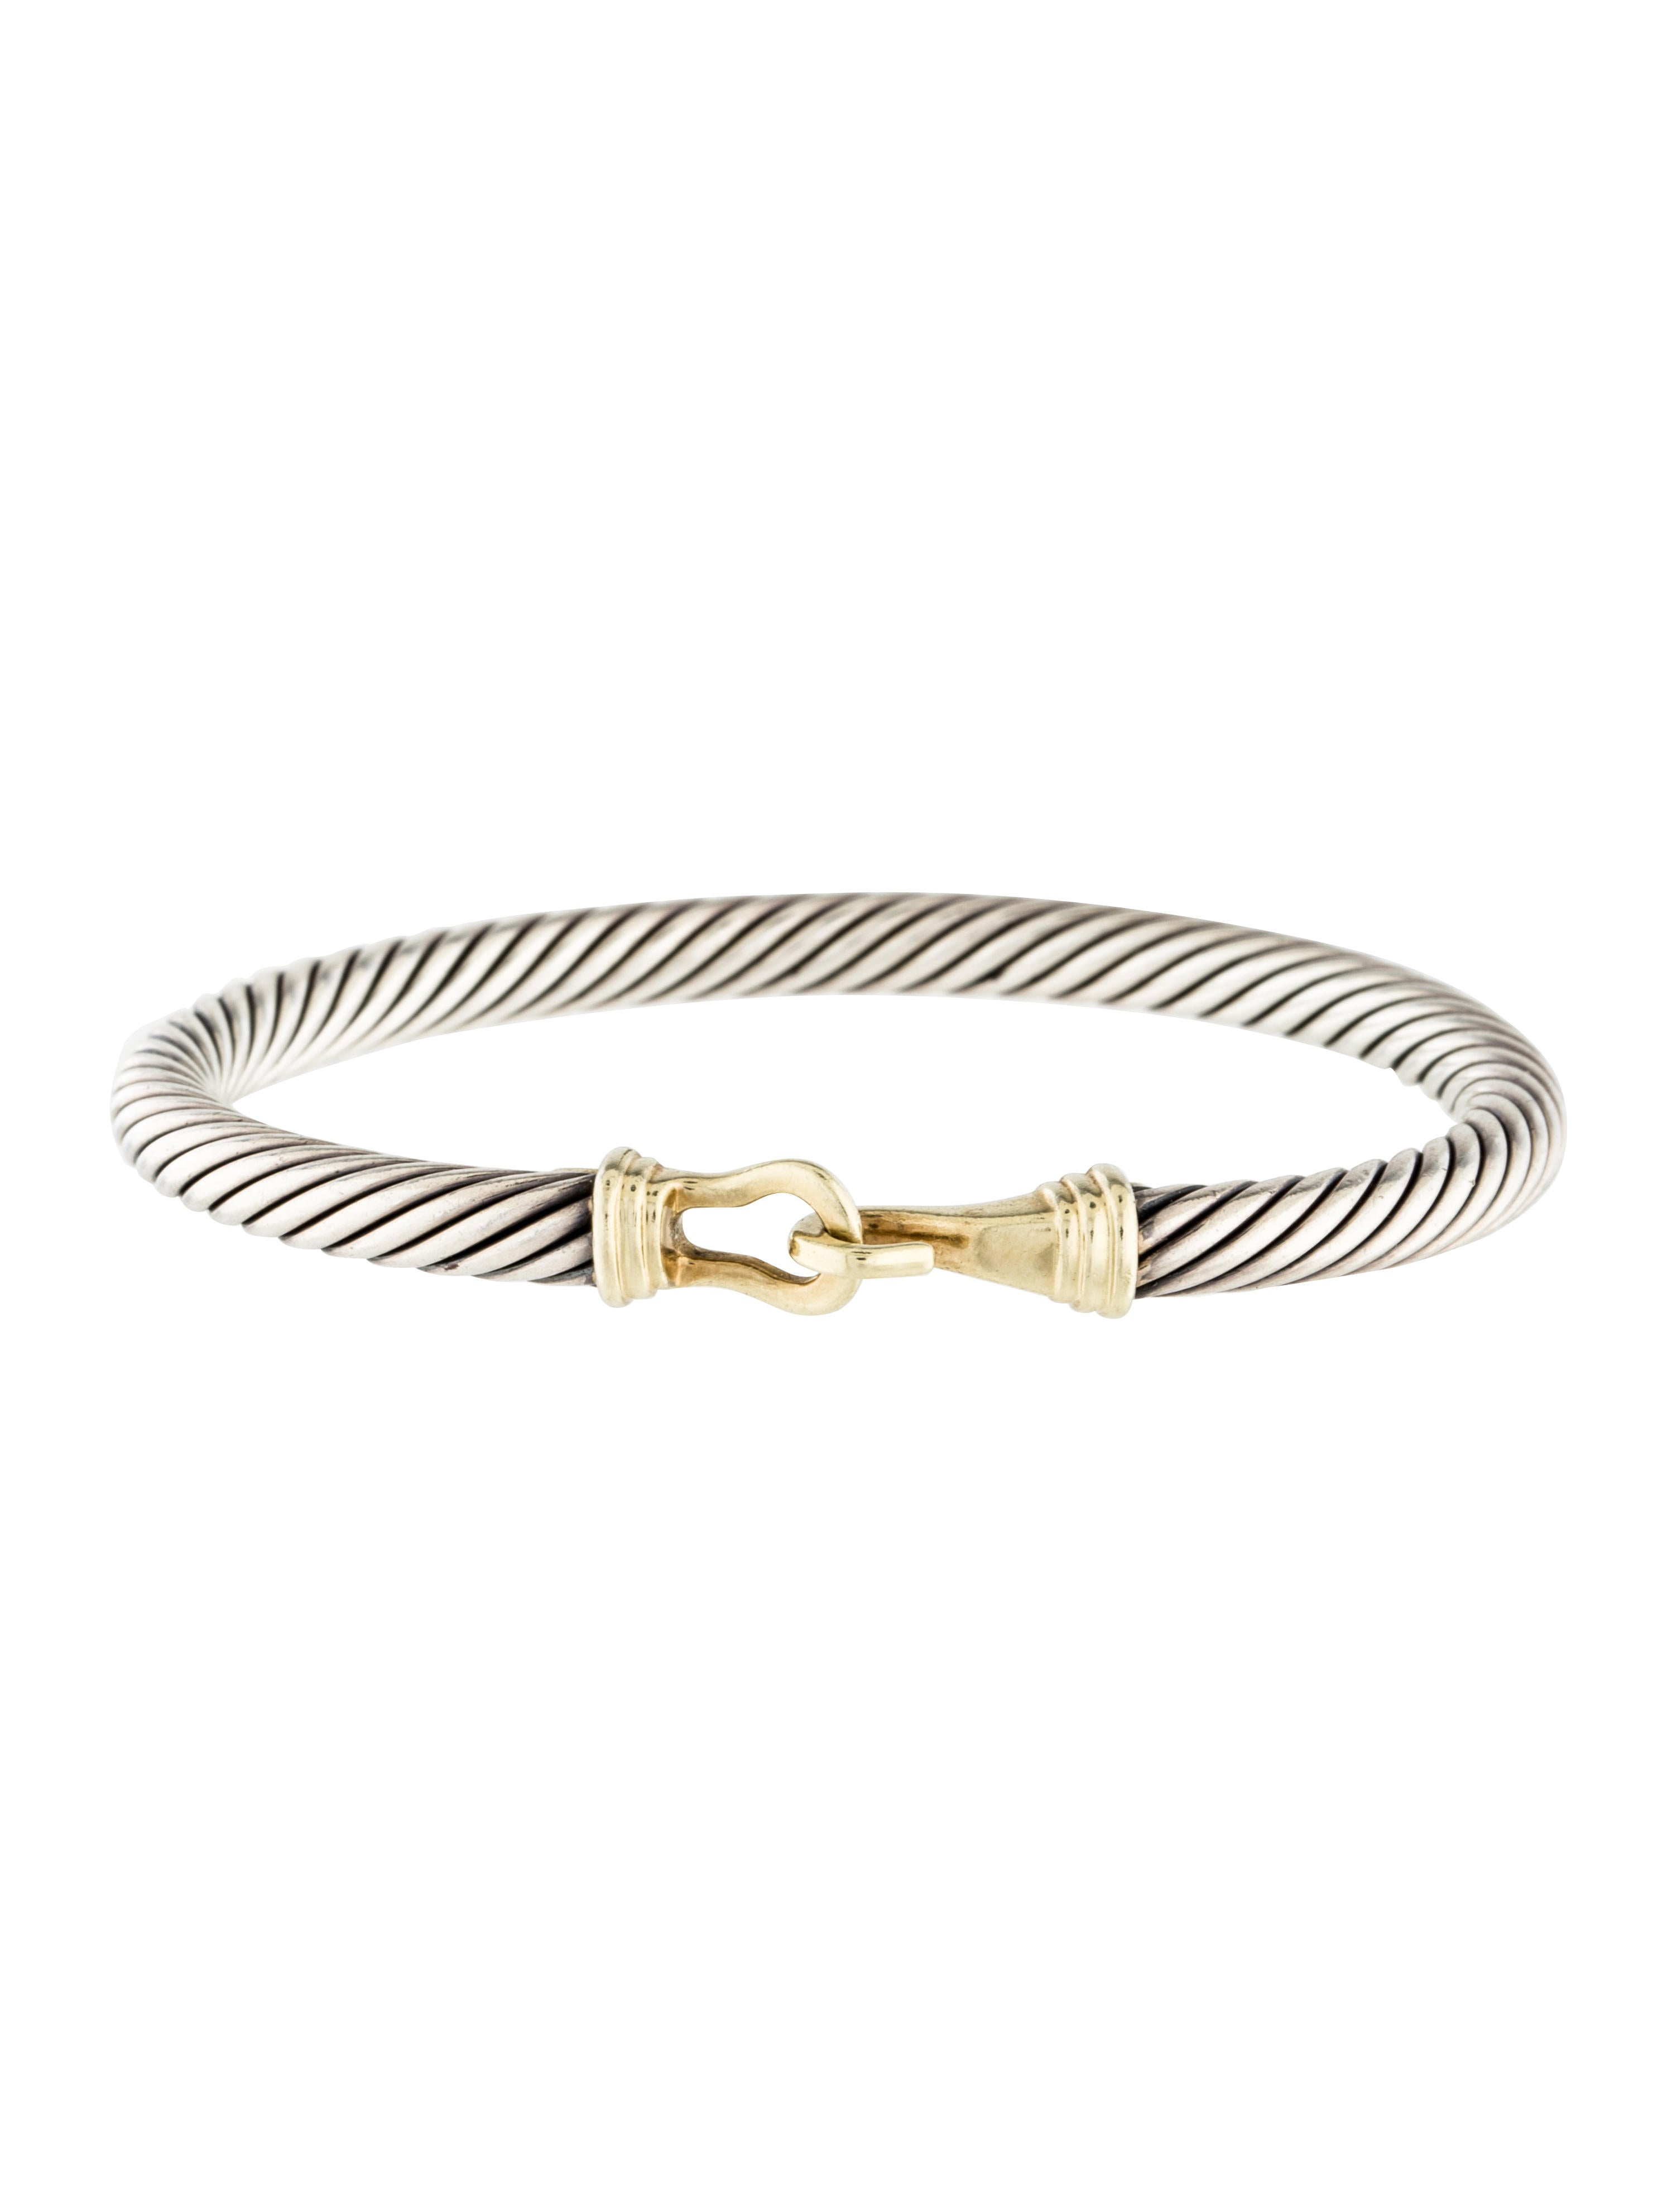 David yurman two tone cable classics buckle bracelet for David yurman inspired bracelet cable